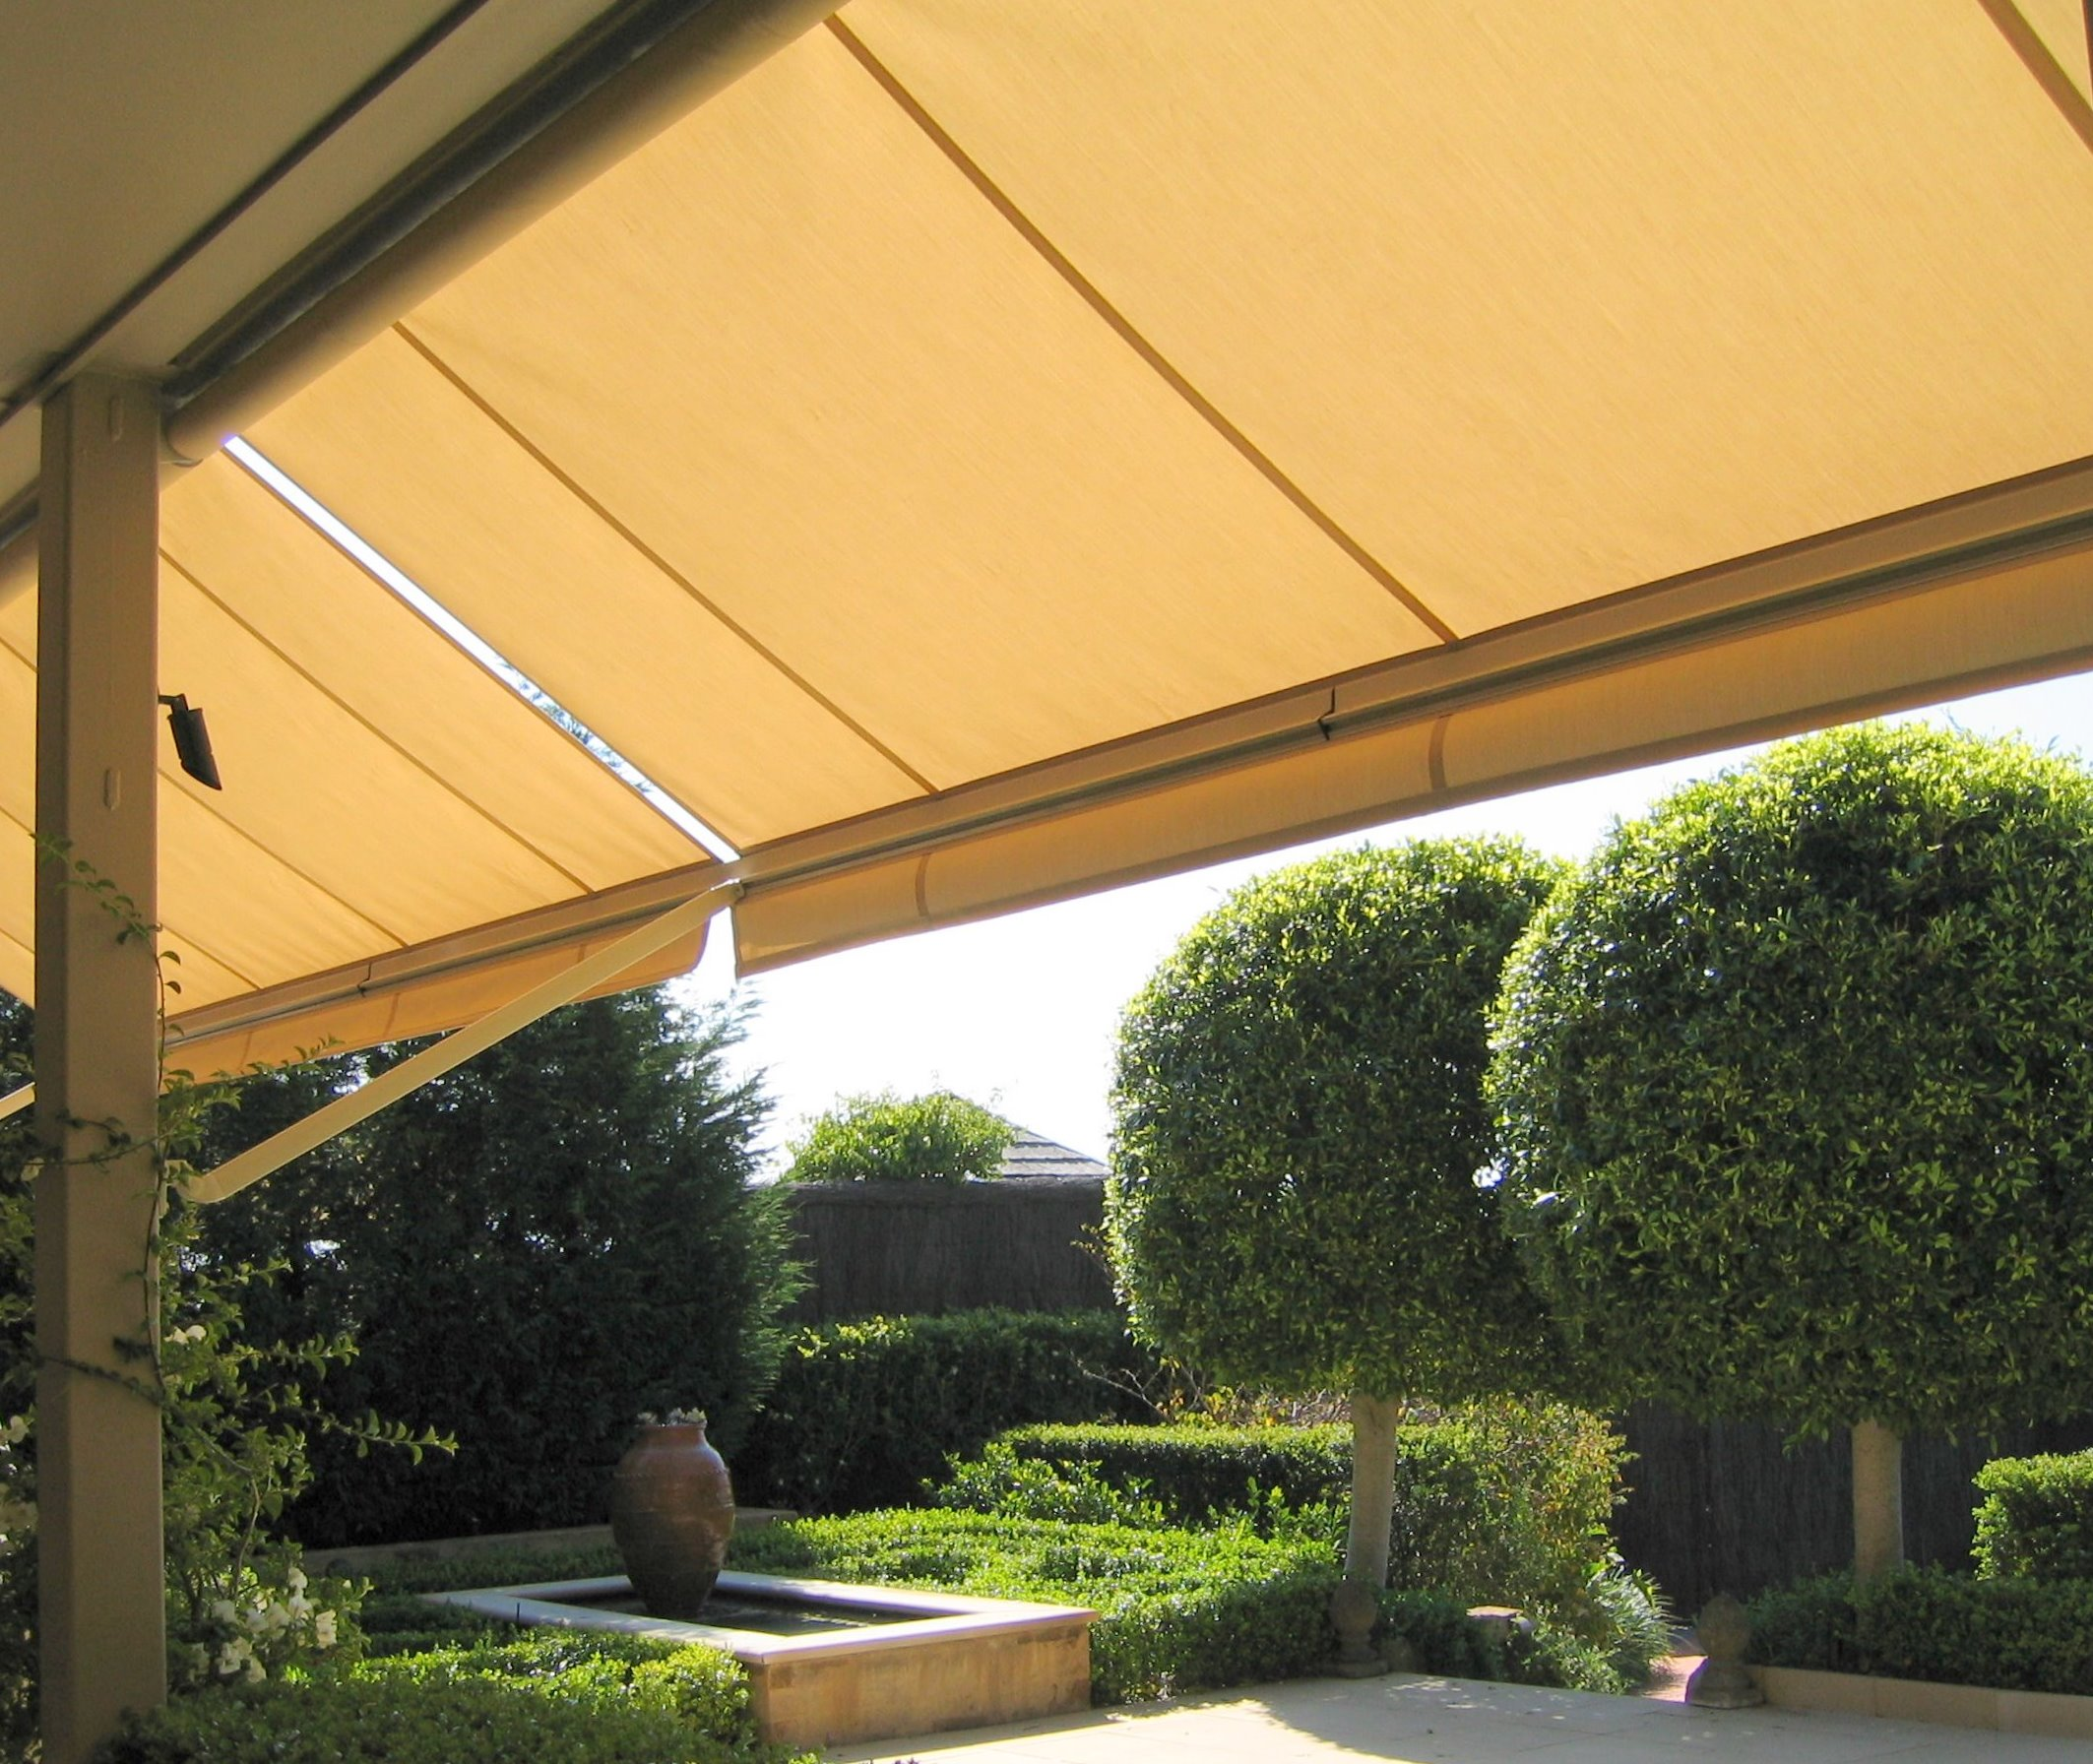 pivot-arm-awning-sydney & Pivot Arm Awnings - Sydney